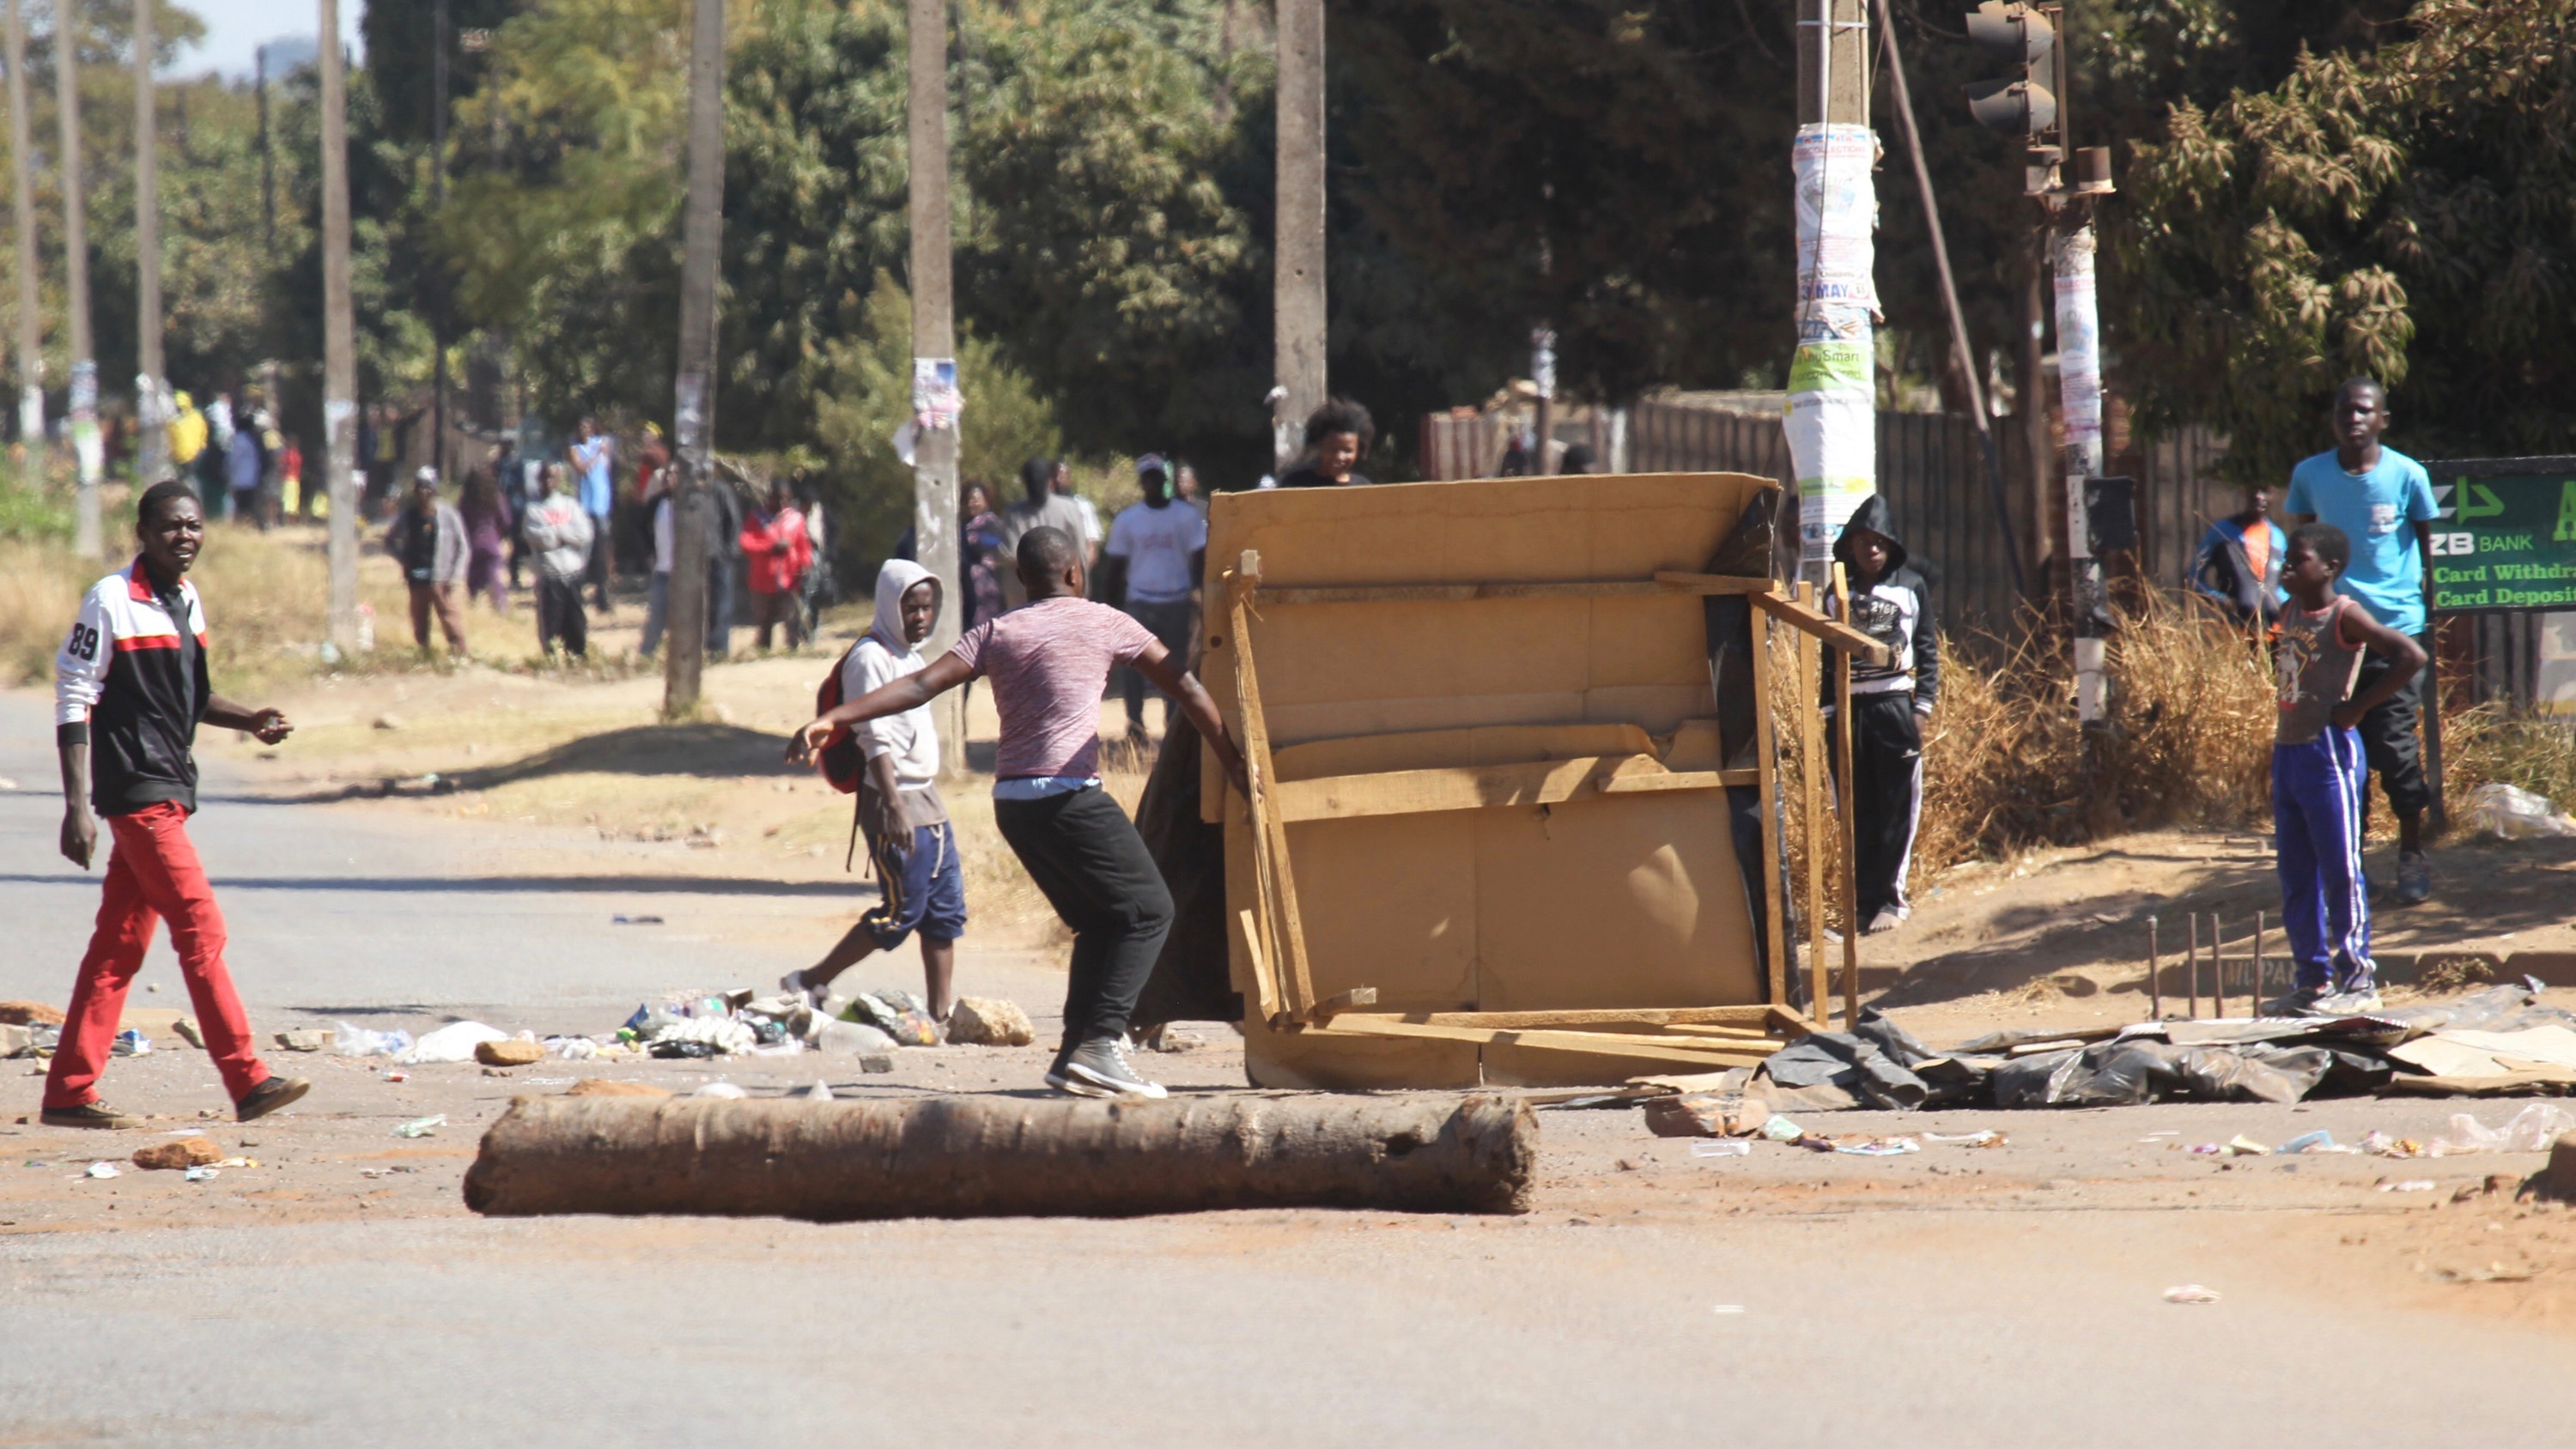 Protestors  block a road leading to the city  following a job boycott called via social media  platforms in Harare, Wednesday, July,6, 2016. The boycott shut down most  of  Zimbabwe as discontent  deepens  over  increasing economic hardships  under President Robert Mugabe's rule.